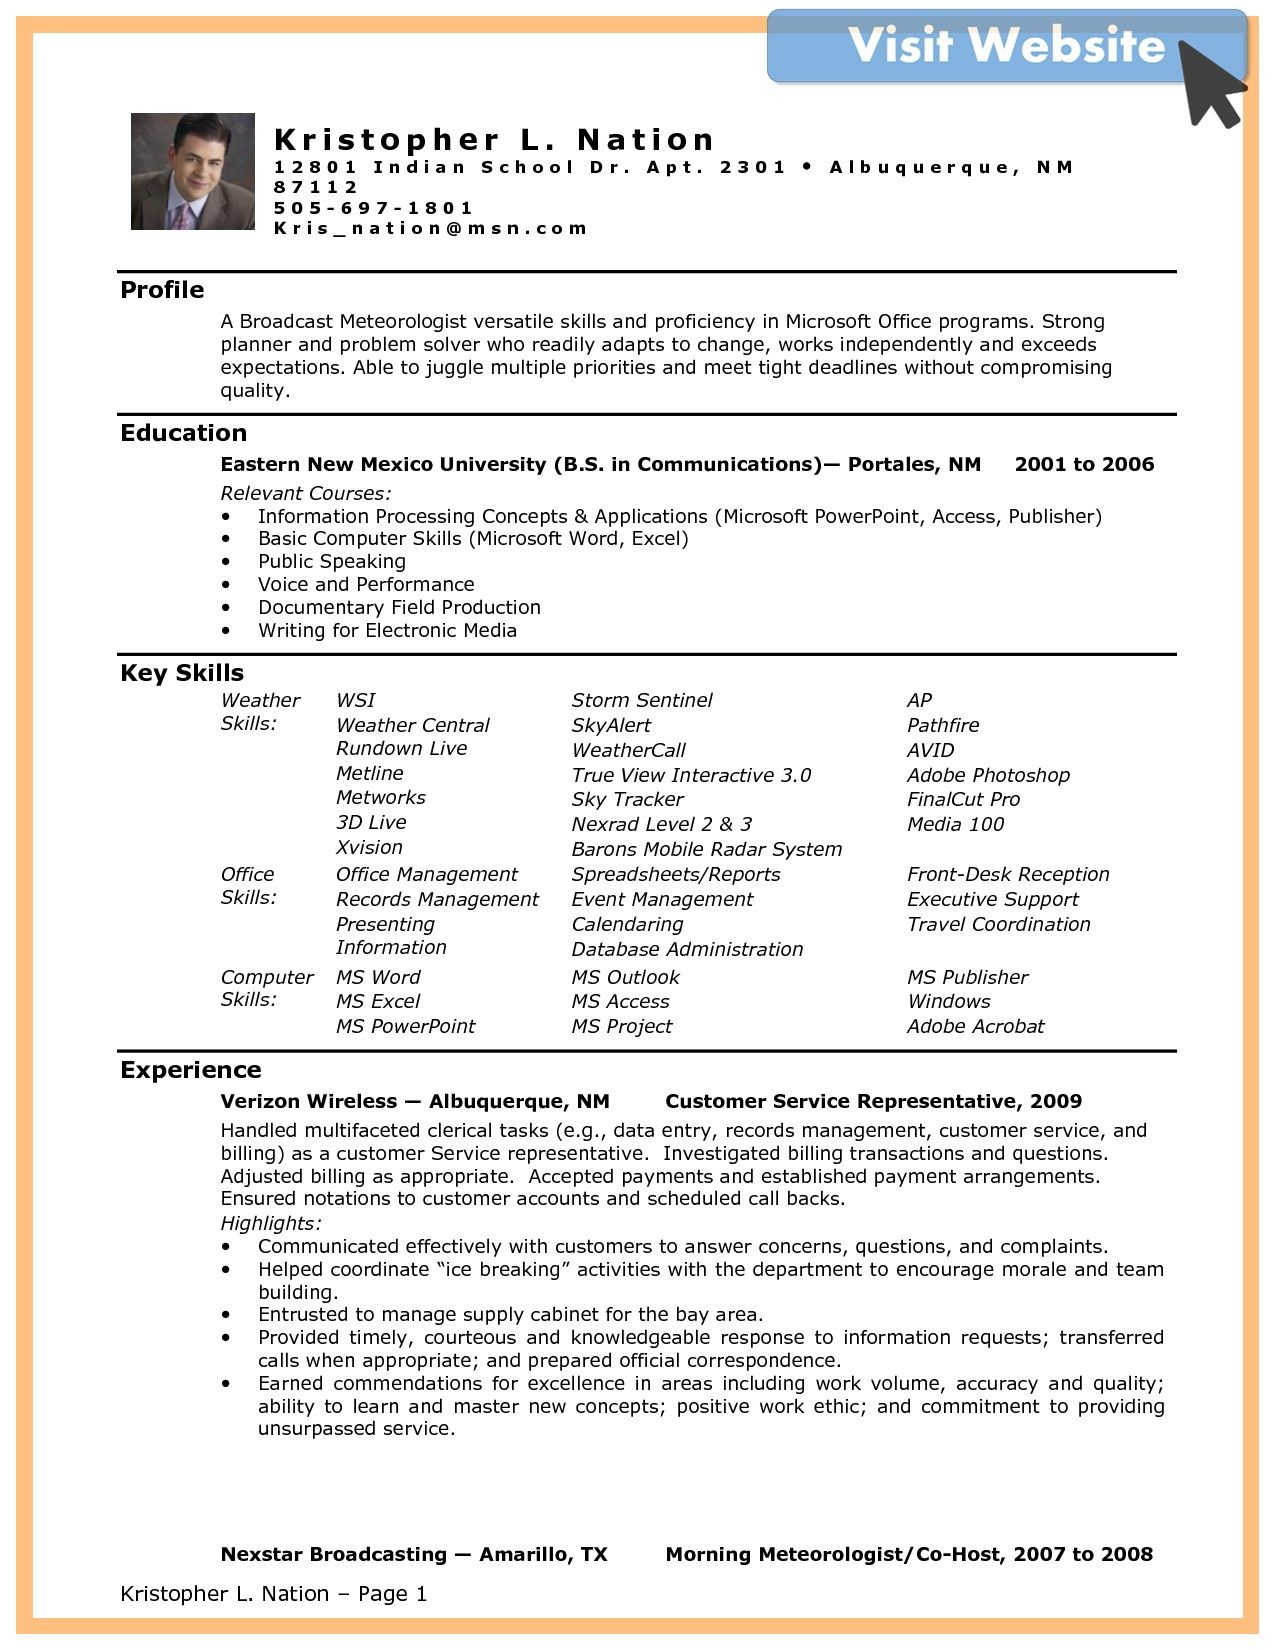 Office Assistant Resume Examples Samples In 2020 Medical Assistant Resume Administrative Assistant Resume Office Assistant Resume